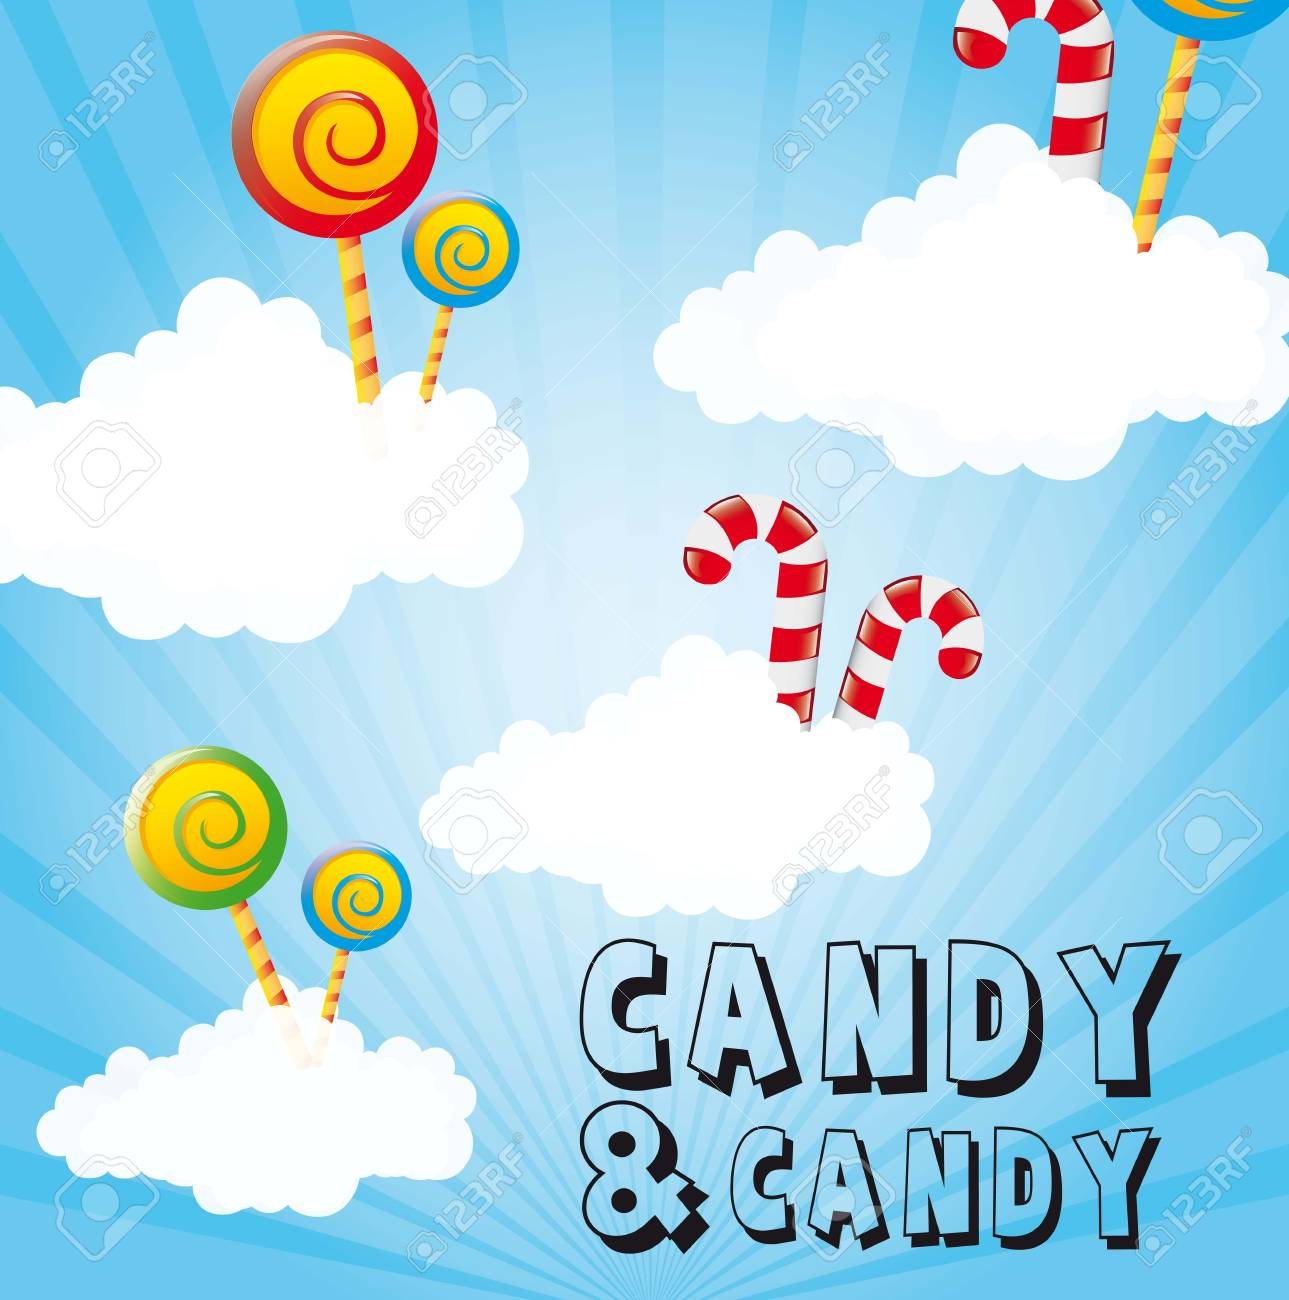 candies over clouds, sky background. illustration Stock Vector - 14751728